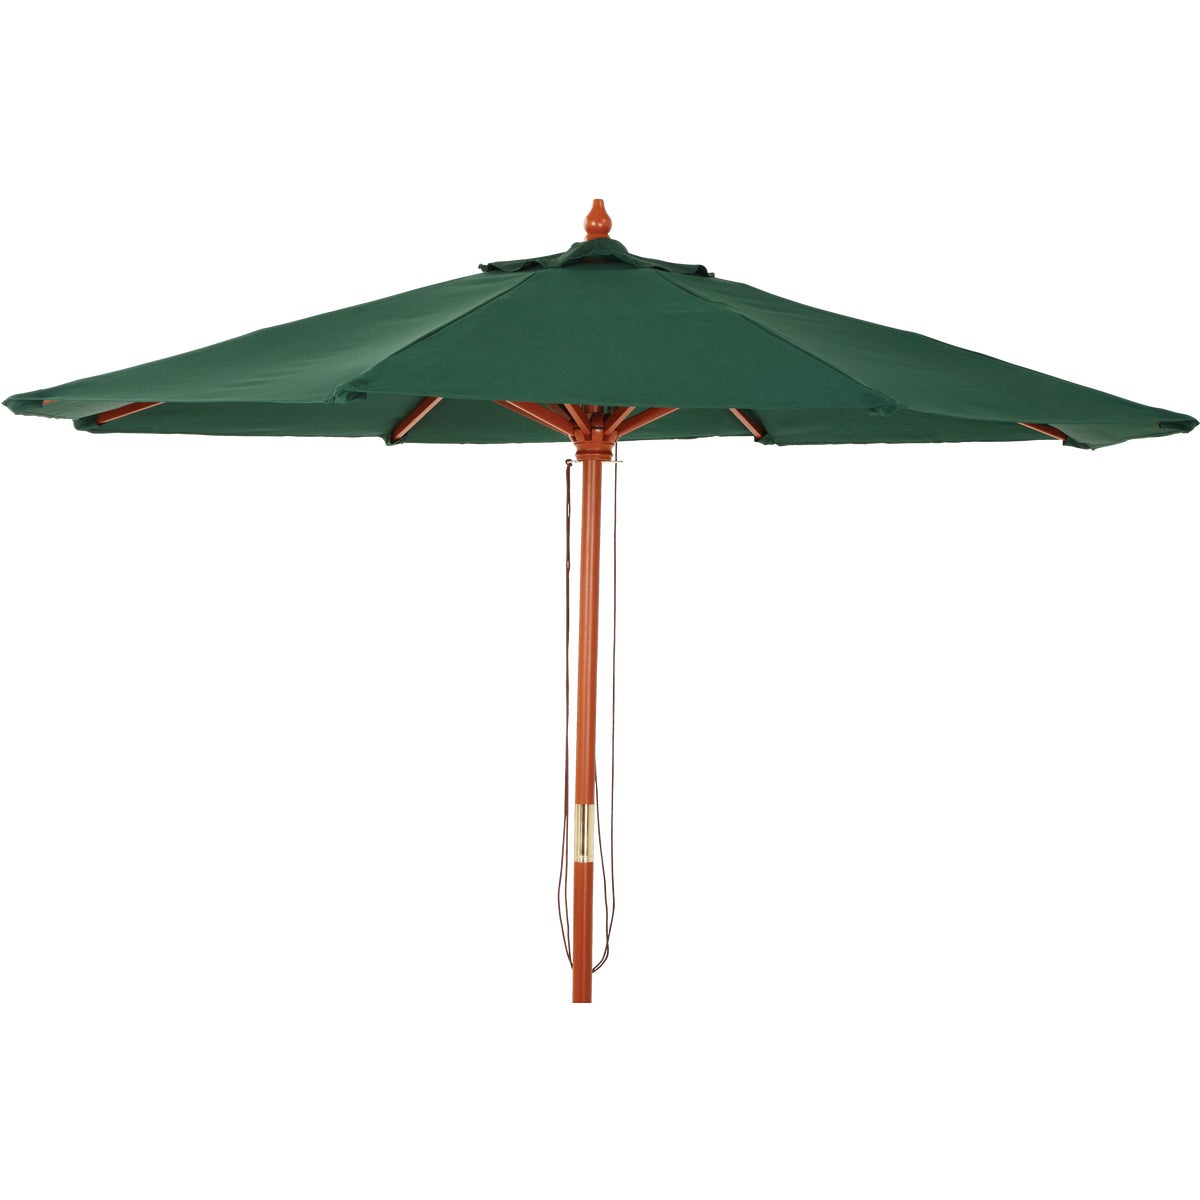 9' MARKET GREEN UMBRELLA - TJWU-003A-270-GRN by Do it Best